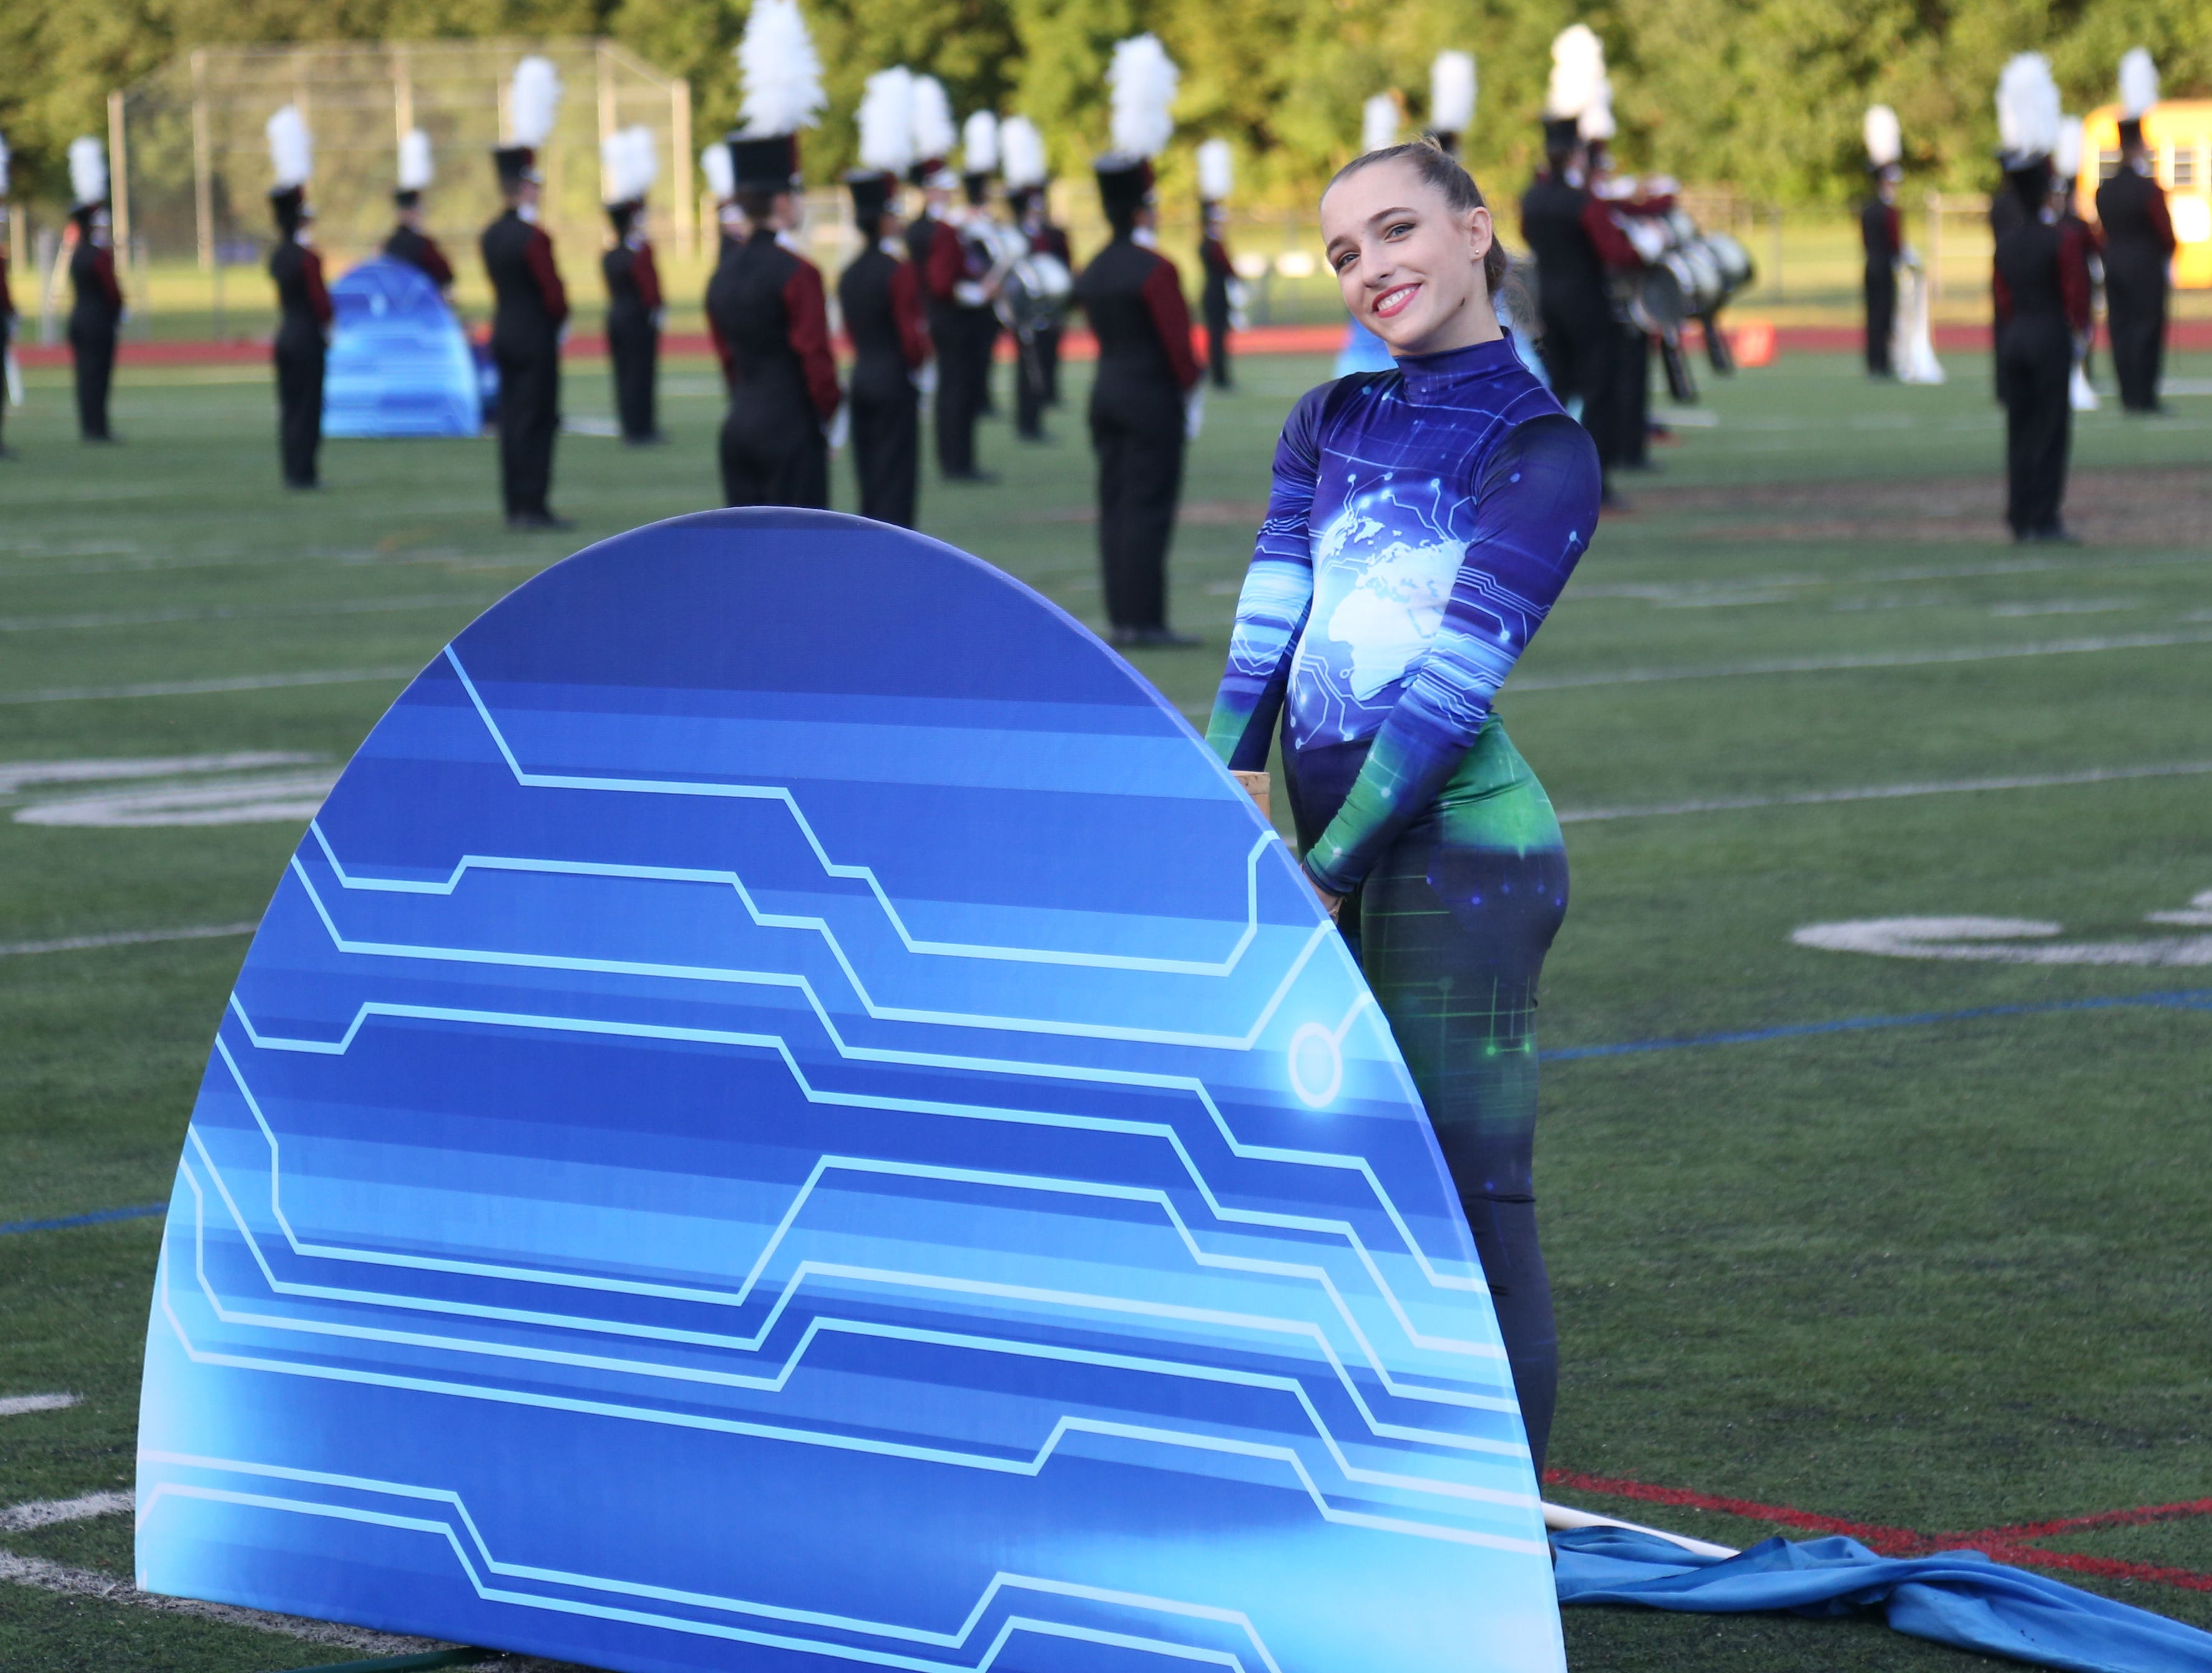 Arlington's color guard and marching band perform during Friday's game between Arlington and John Jay in Freedom Plains on Sept 14, 2018.